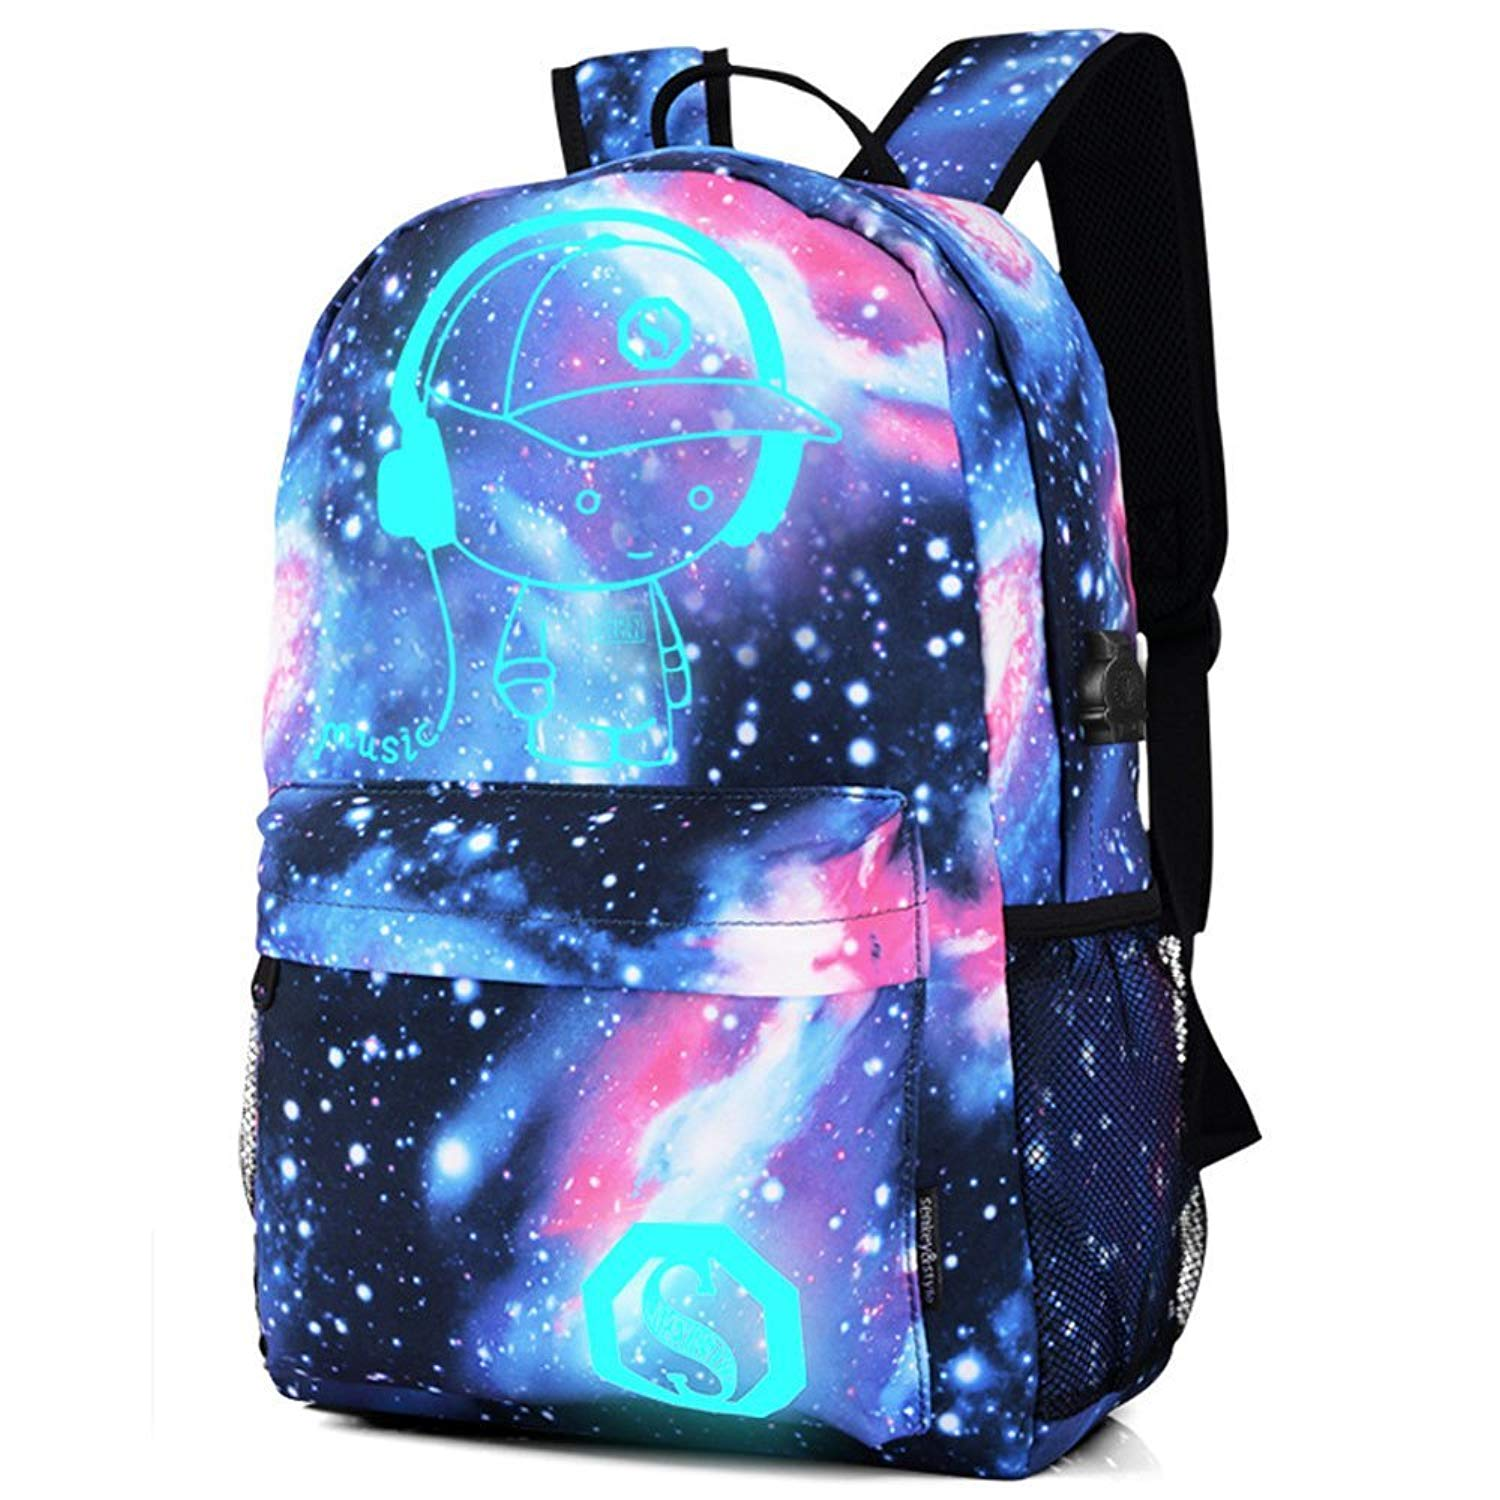 fb02ac4dda Get Quotations · Cool Backpacks For Teen Girls In Middle School Canvas  Backpacks For Teen Girls School Galaxy Under